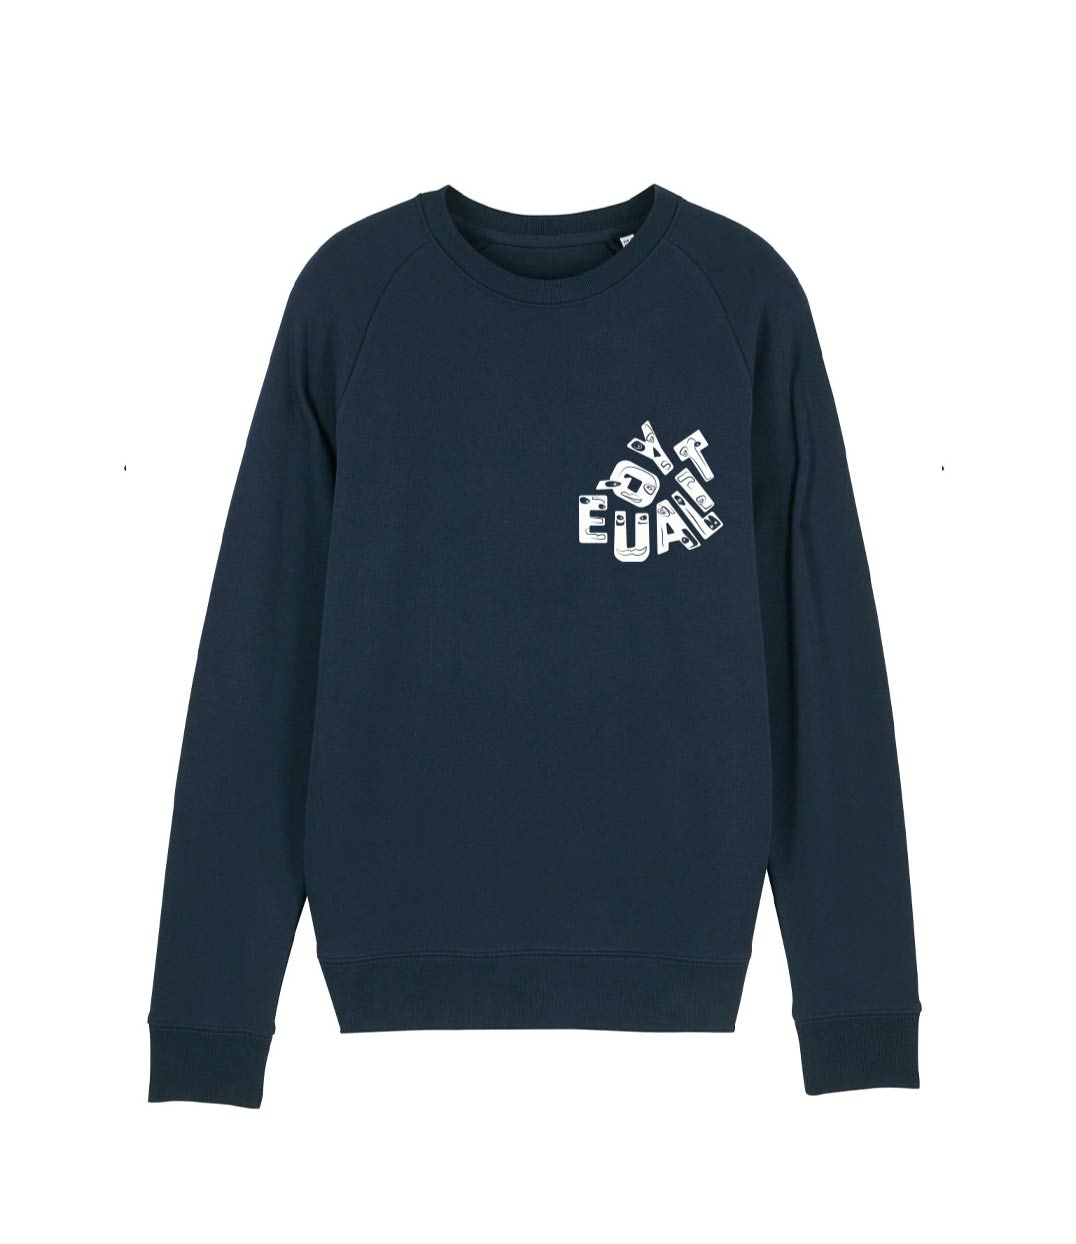 sweat bleu marine equality pour homme leonor roversi